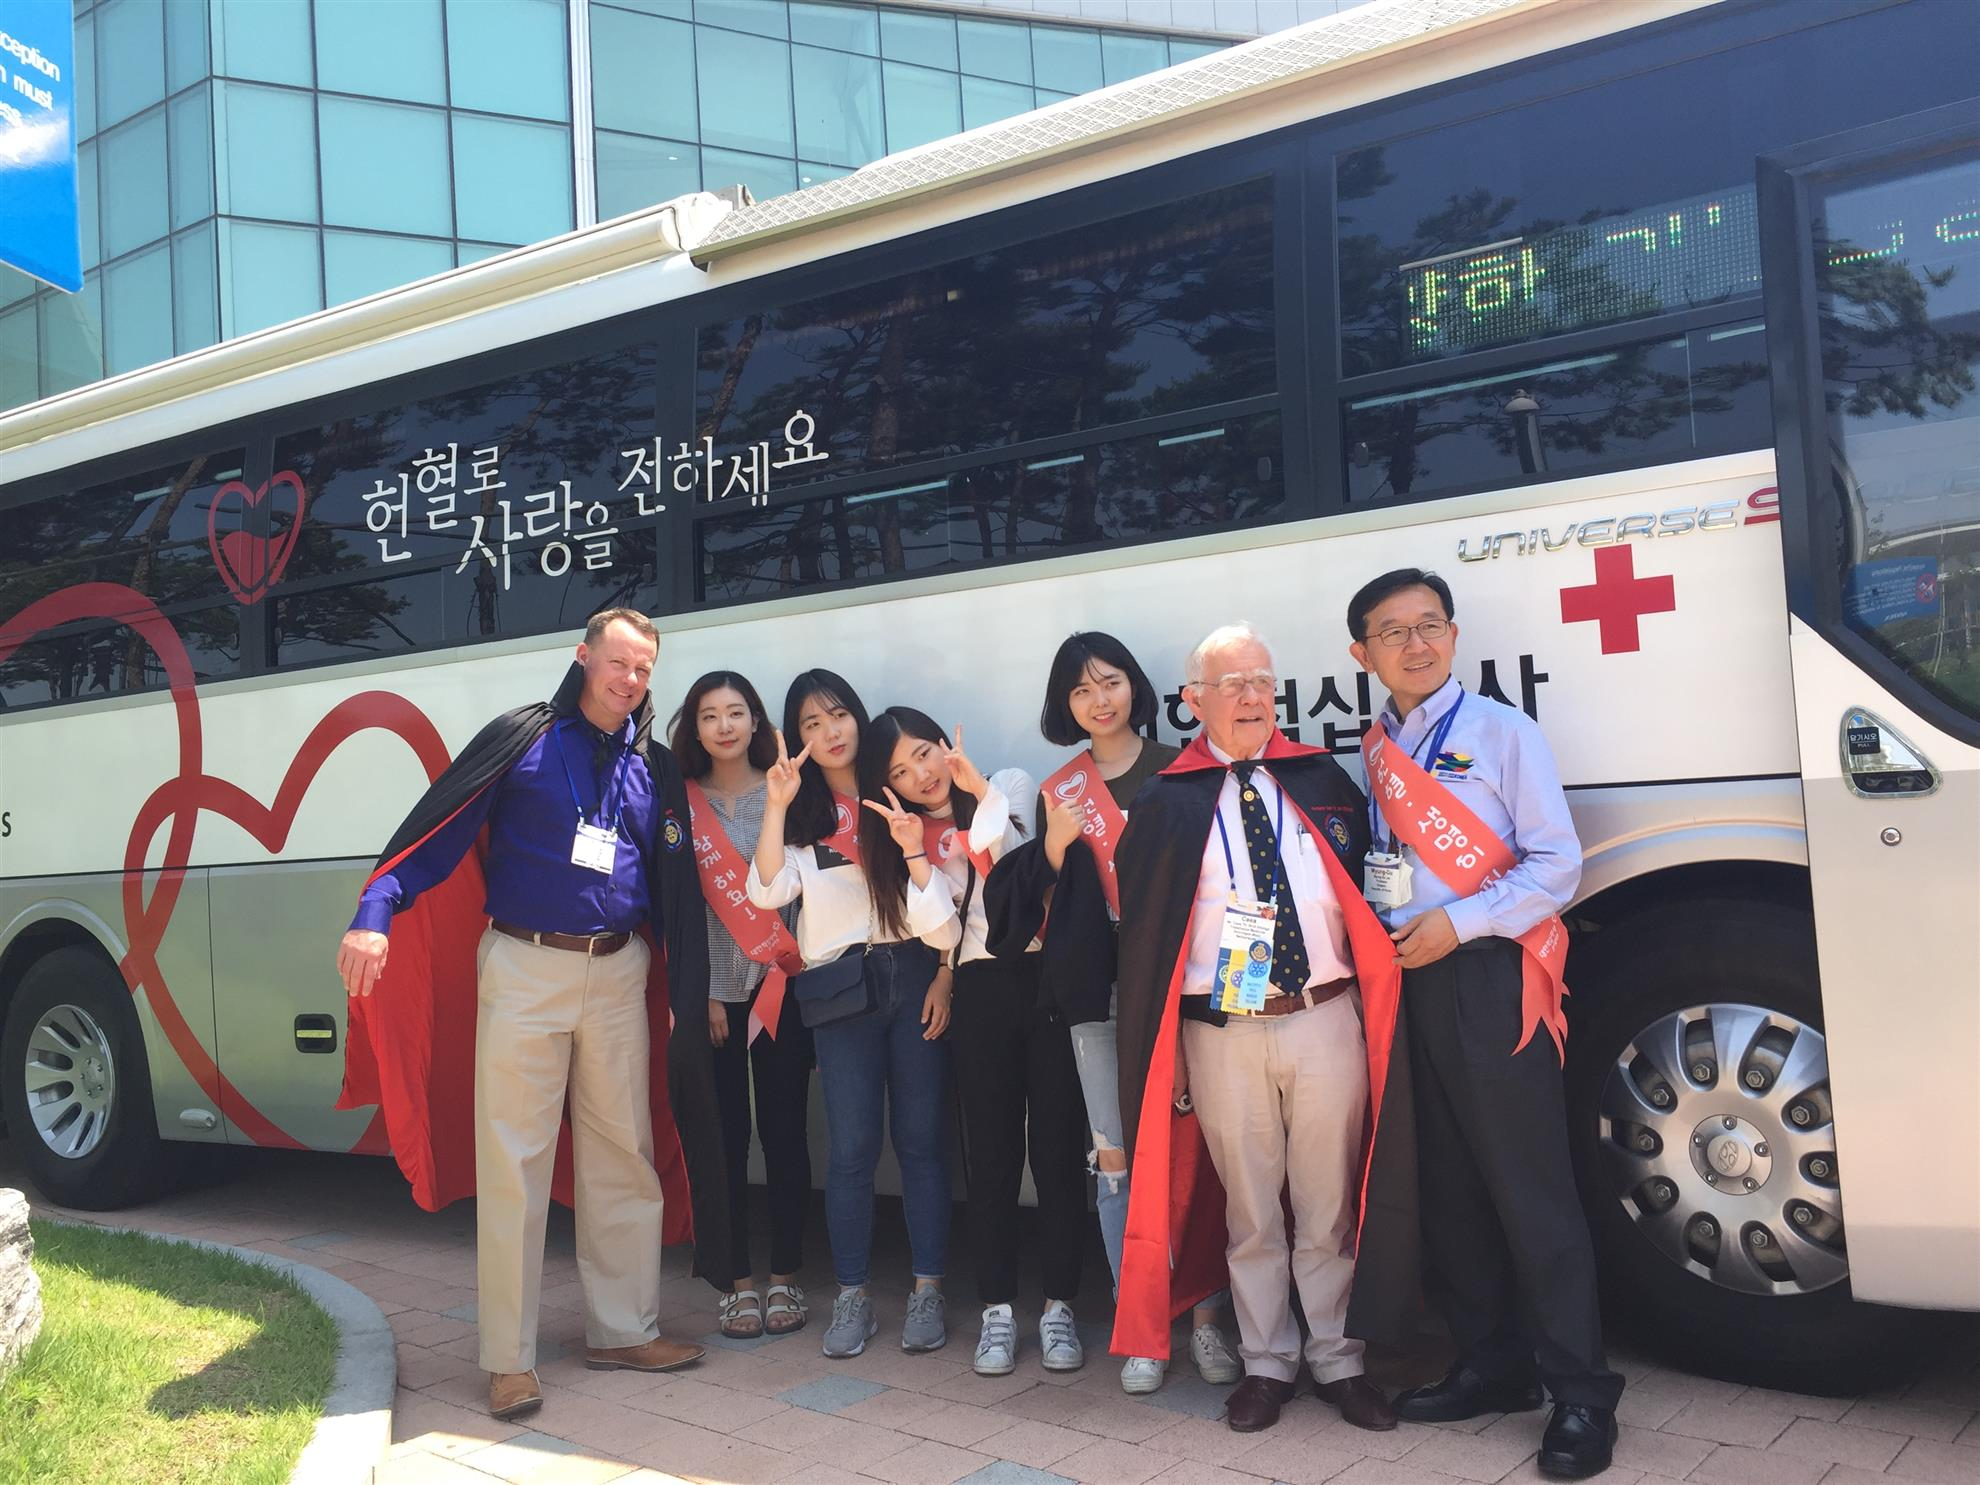 Our friends from the Korean Red Cross were having a blood drive.